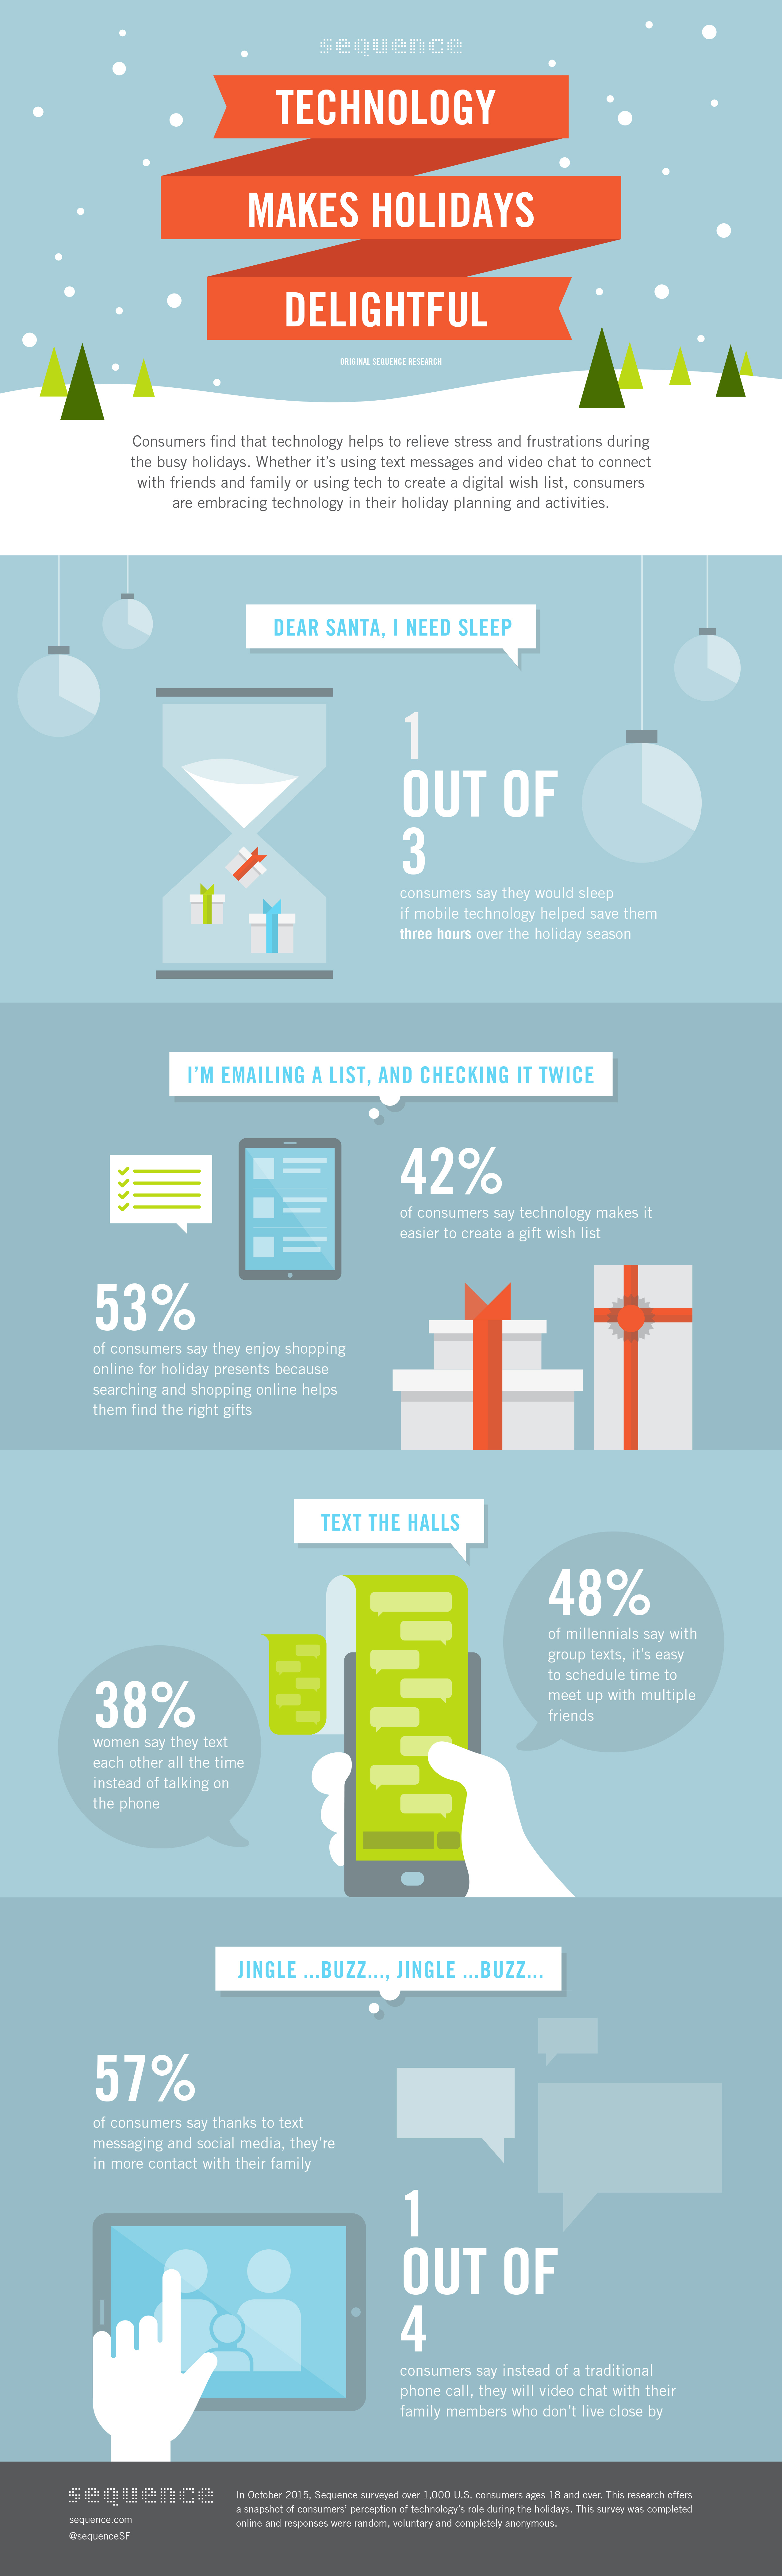 during the holidays 1 in 3 consumers would sleep if mobile tech